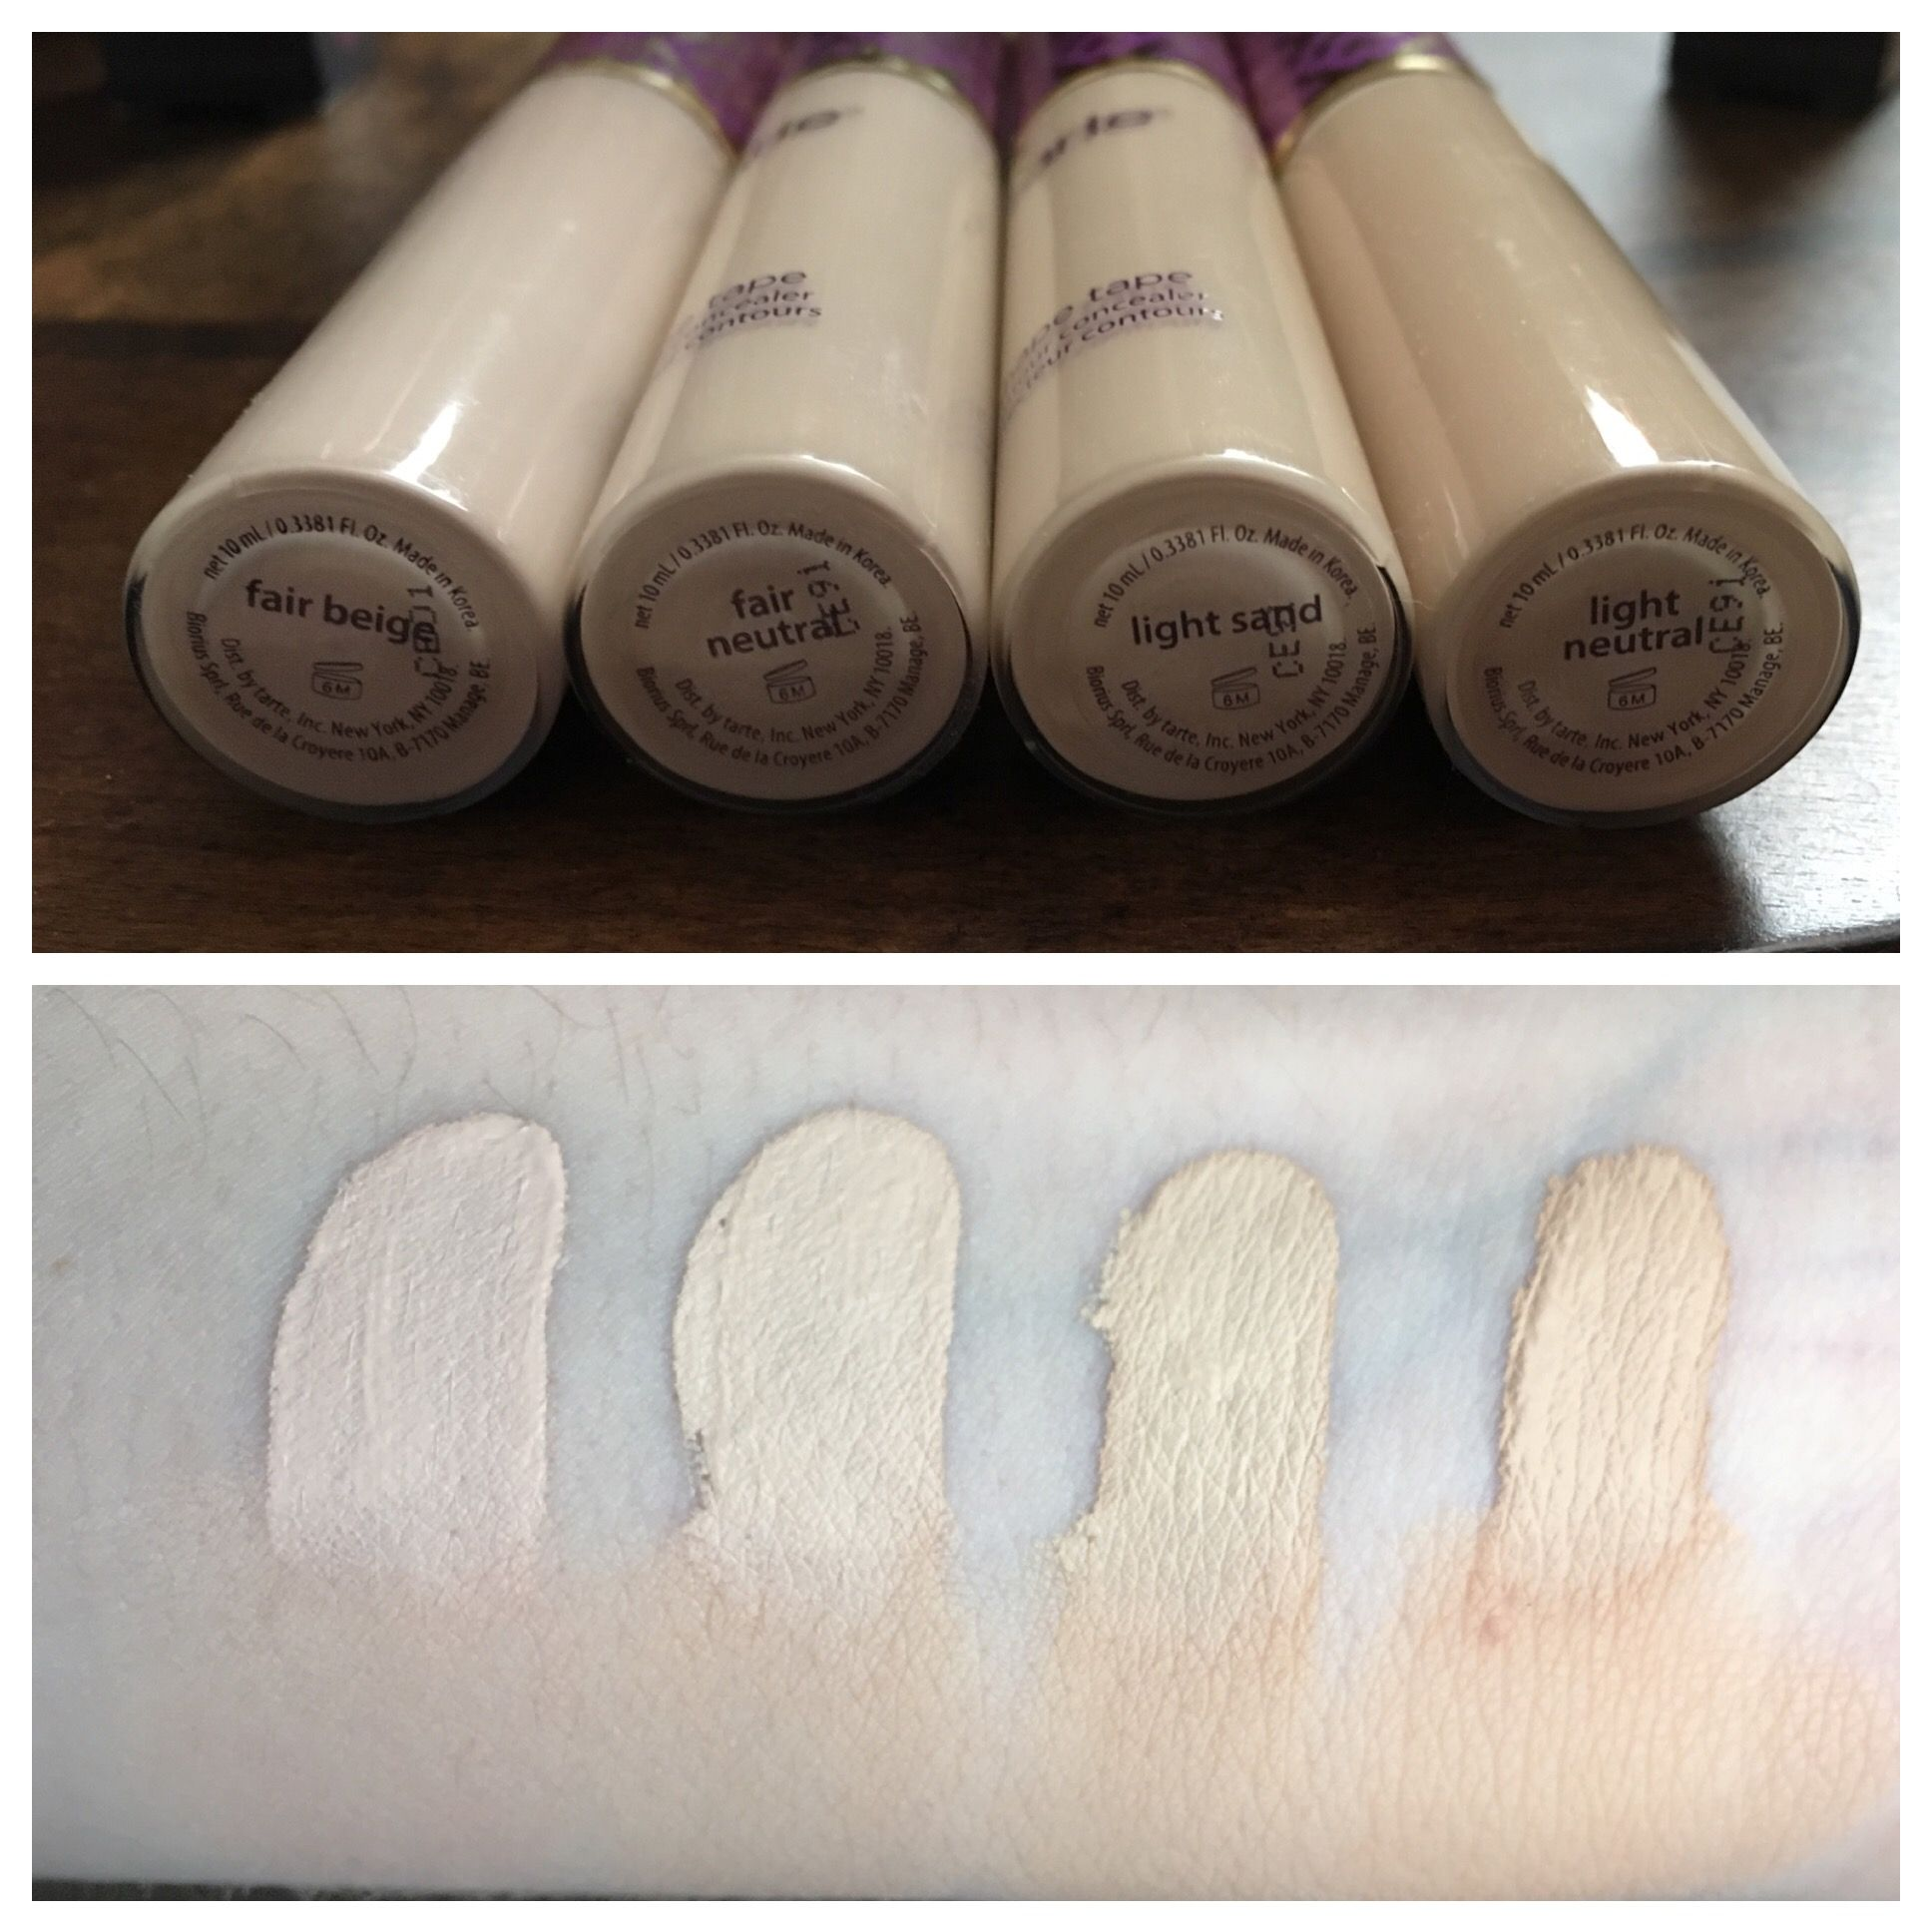 Tarte Shape Tape Concealer Swatches Swatches In Natural Light And Blended Out At Shape Tape Concealer Swatches Shape Tape Concealer Tarte Shape Tape Concealer